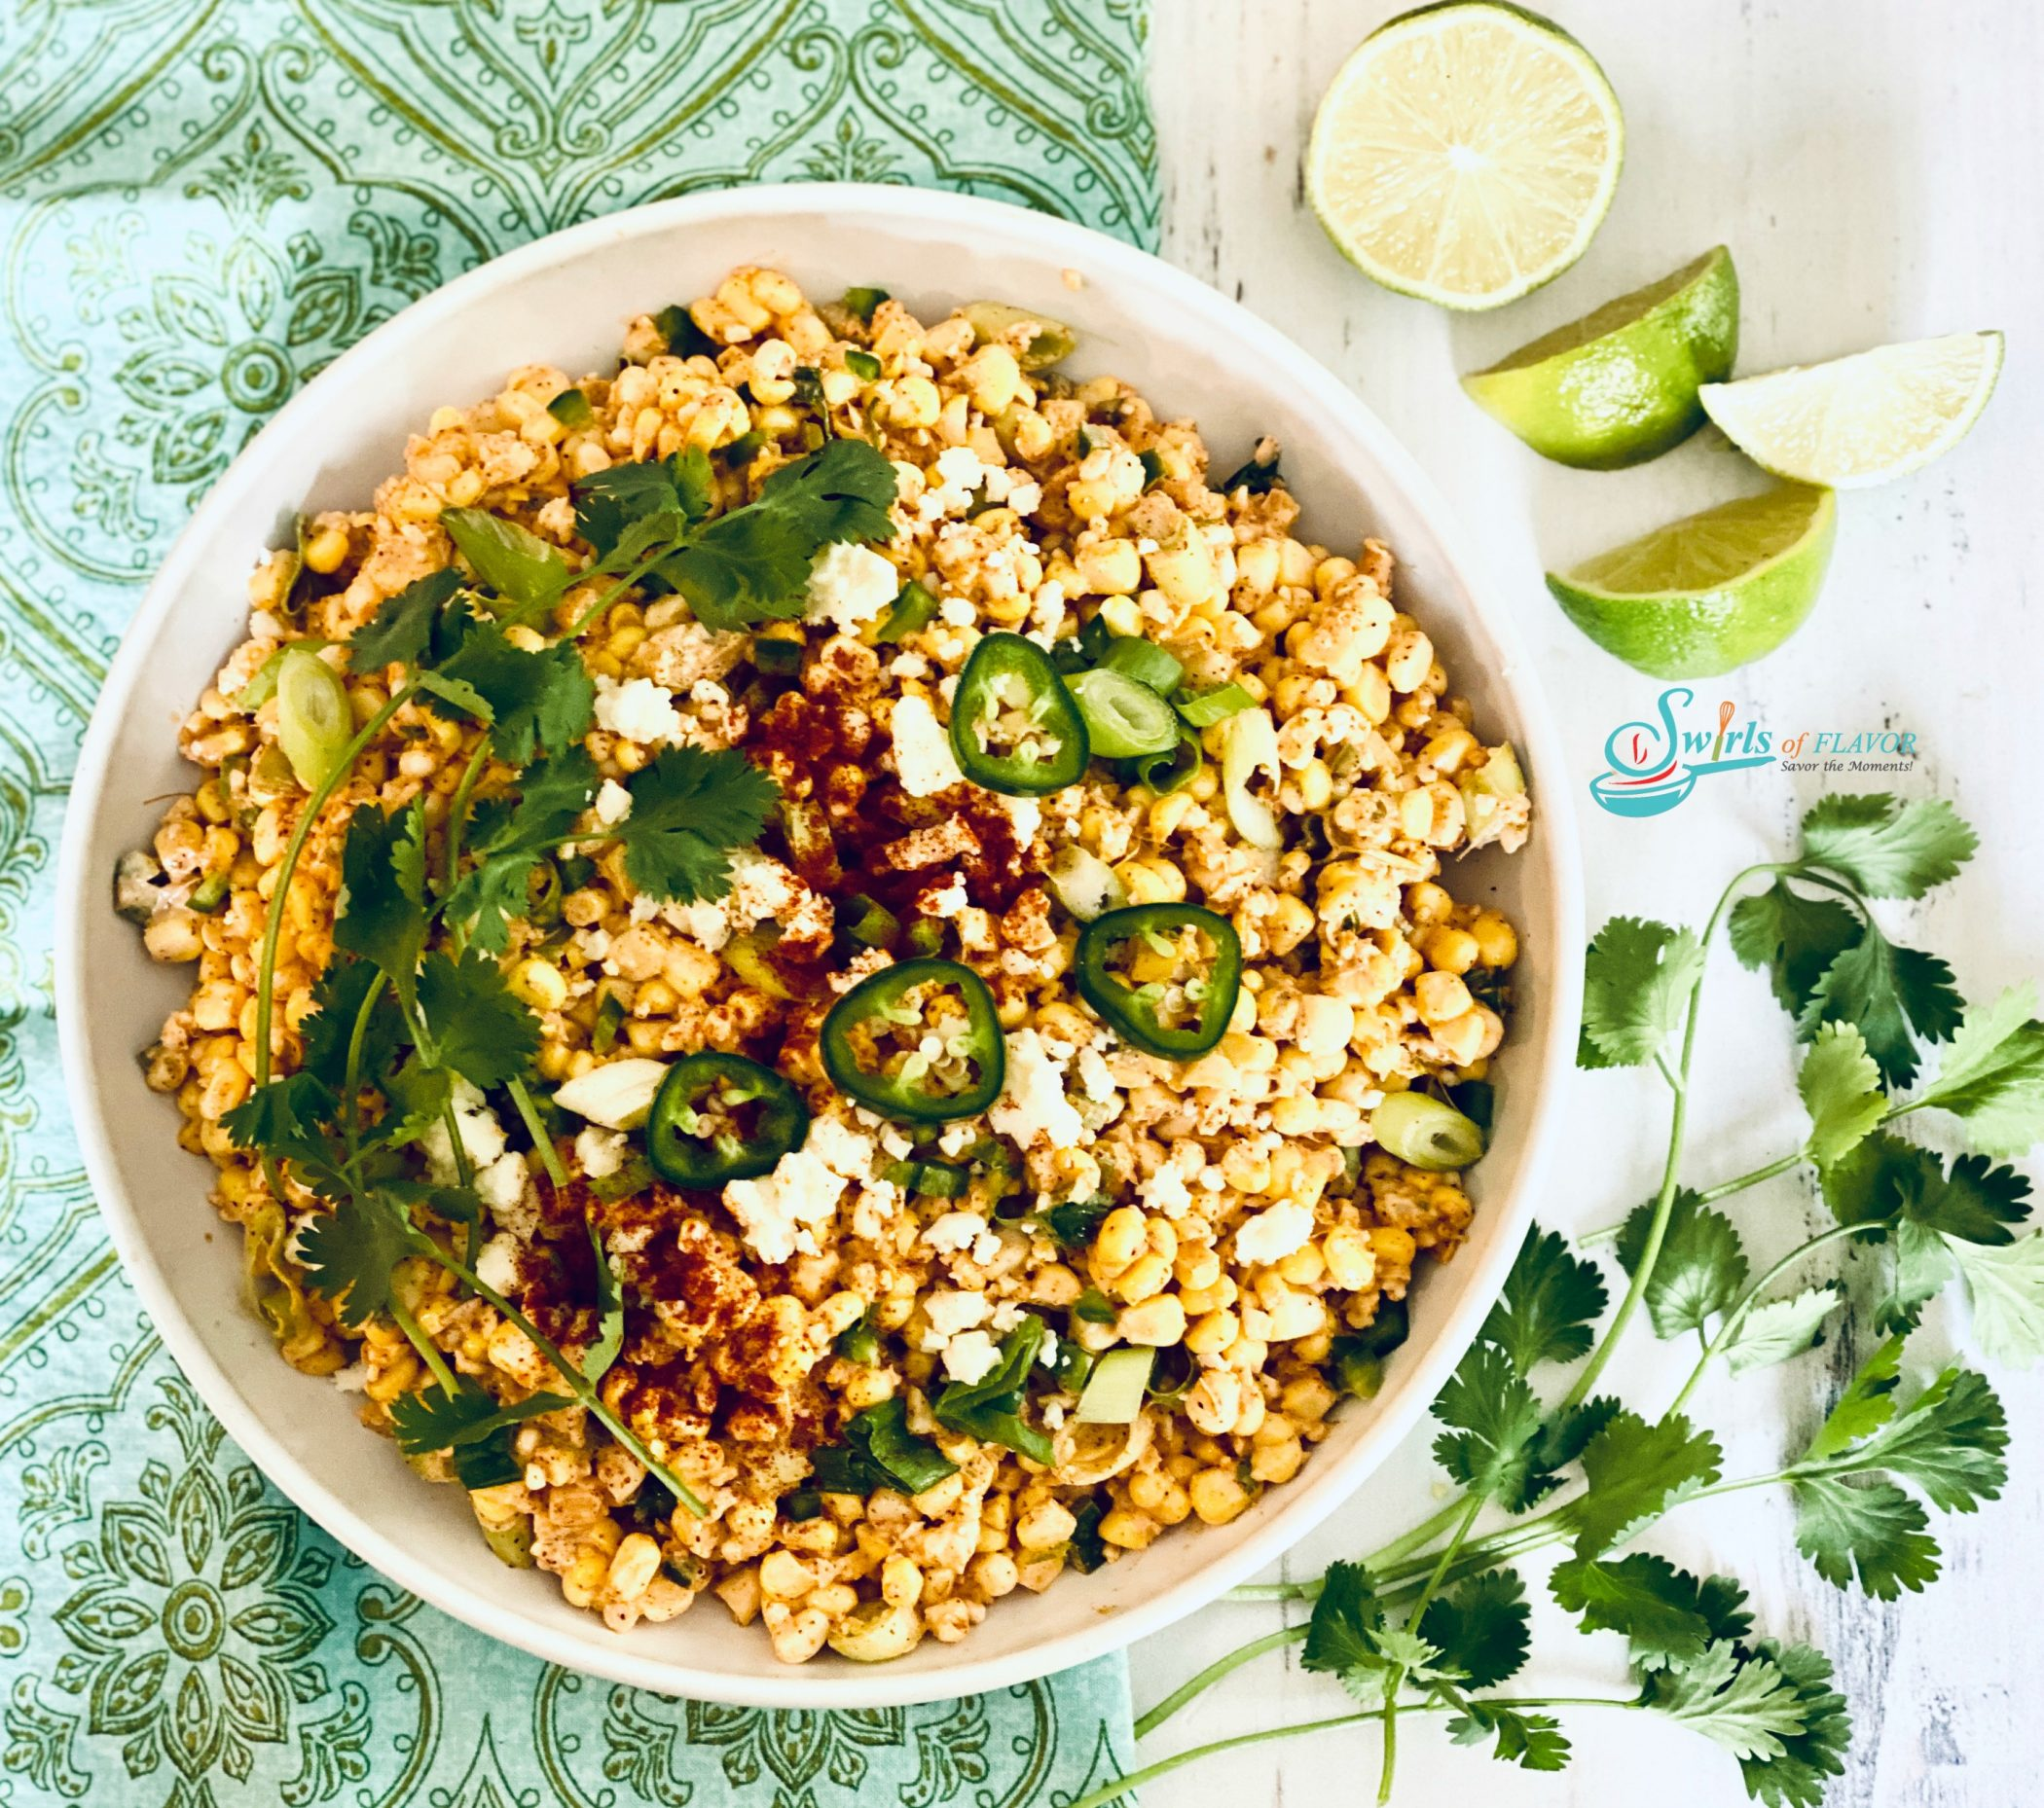 corn, jalapeno, cheese and cilantro in bowl with fresh limes